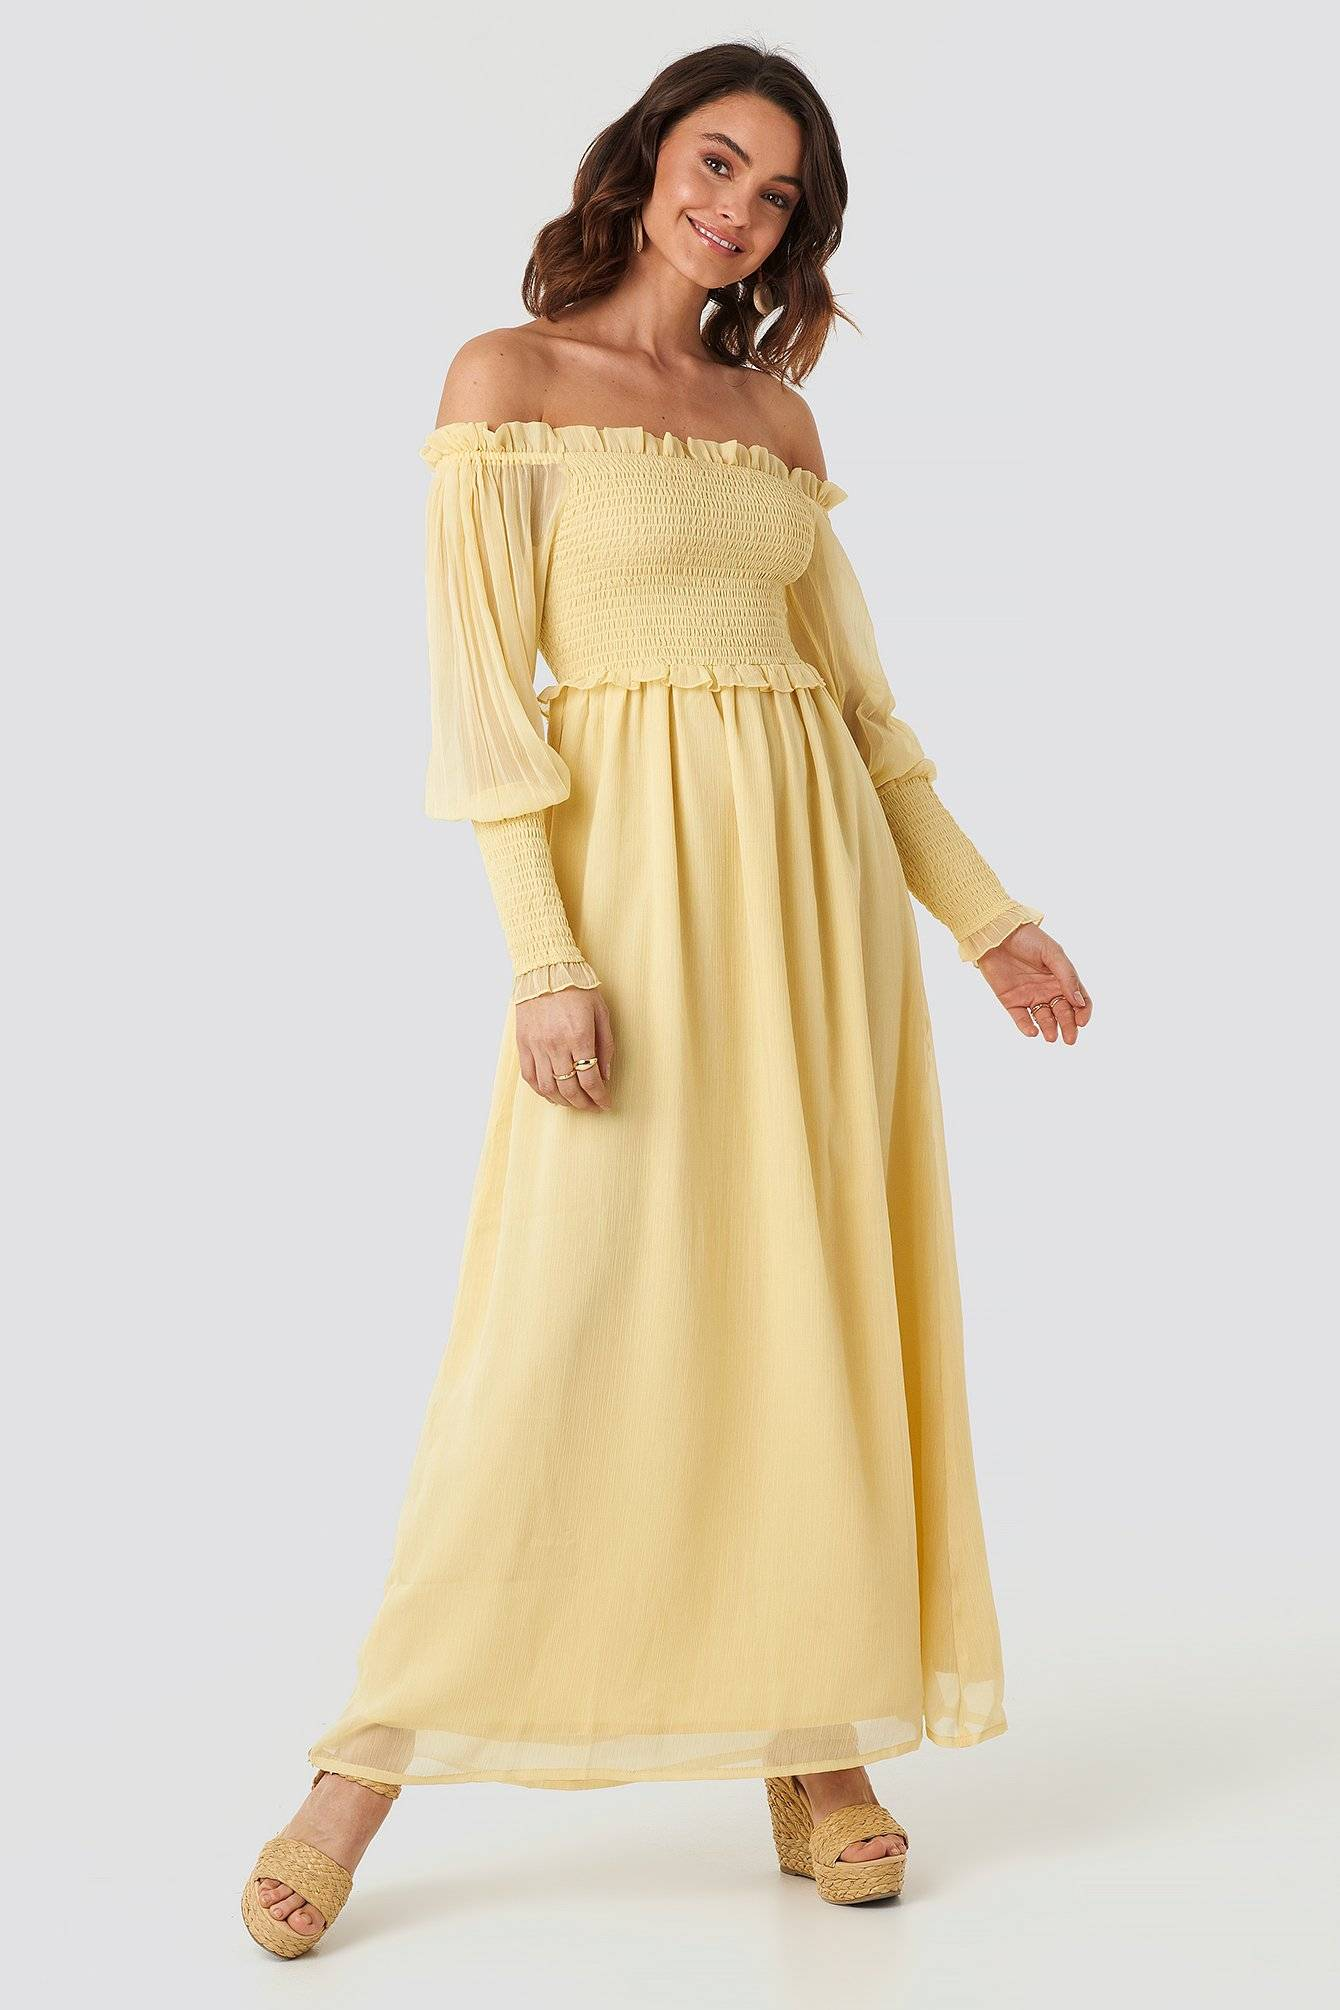 Image of NA-KD Trend Off Shoulder Smock Chiffon Dress - Yellow